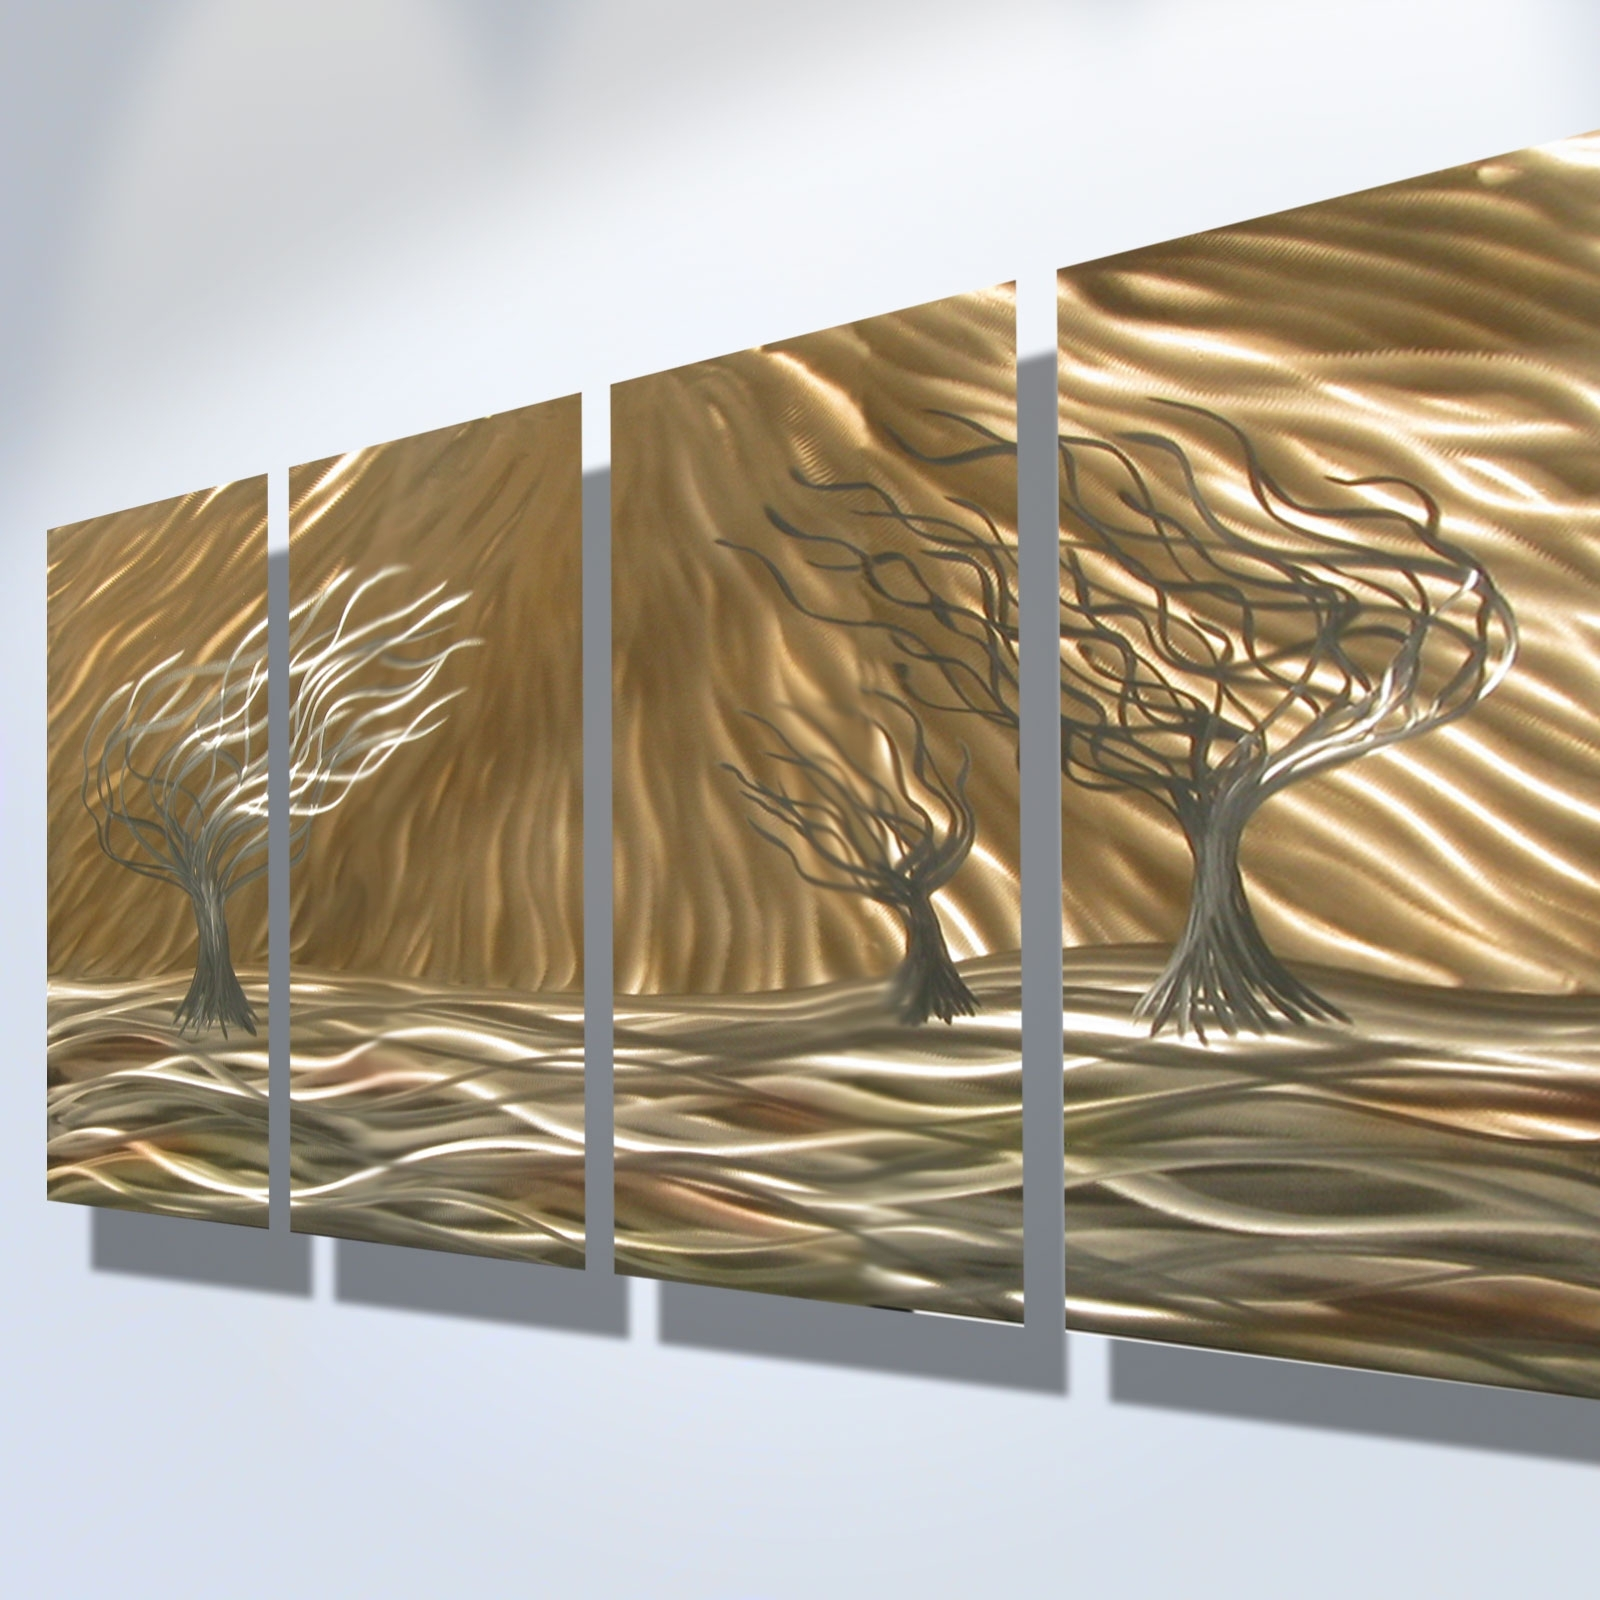 3 Trees 4 Panel – Abstract Metal Wall Art Contemporary Modern Regarding Recent Abstract Outdoor Wall Art (View 1 of 20)